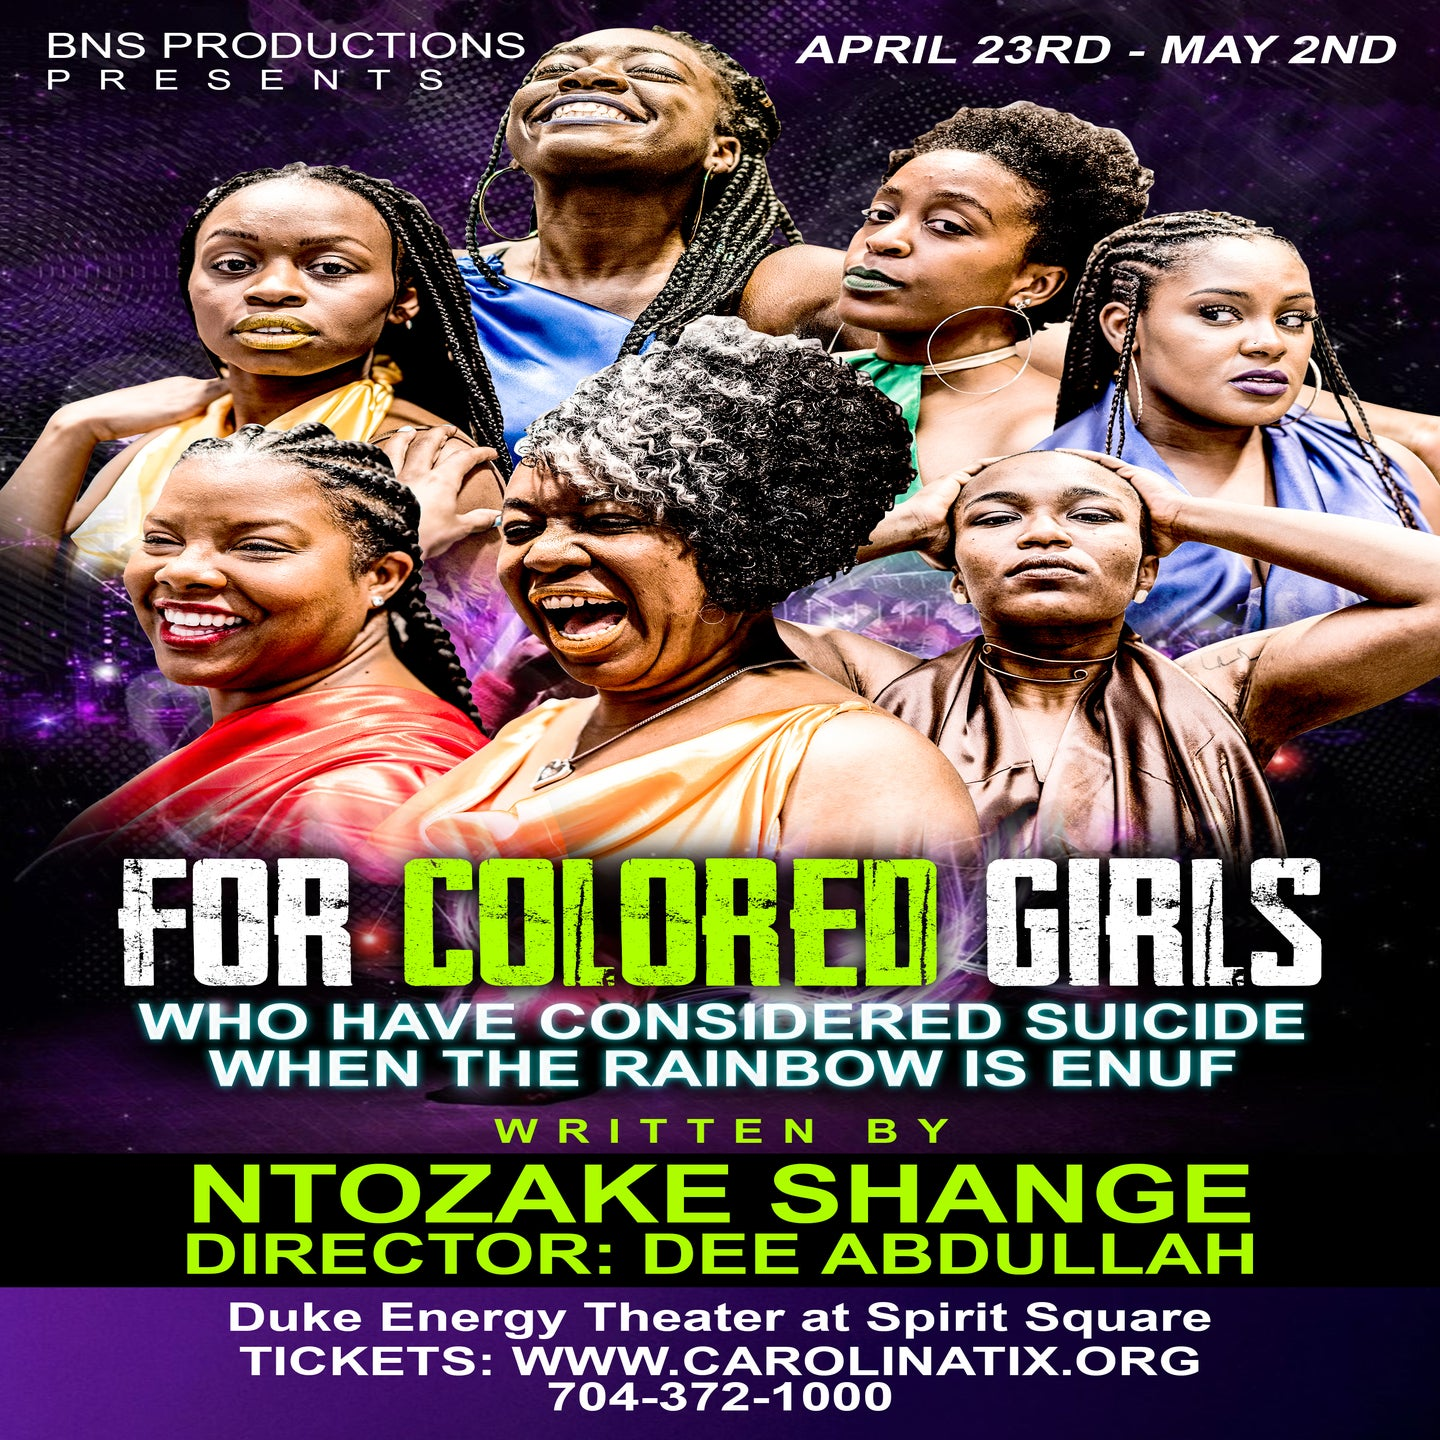 For Colored Girls Who Considered Suicide When The Rainbow Is Enuf